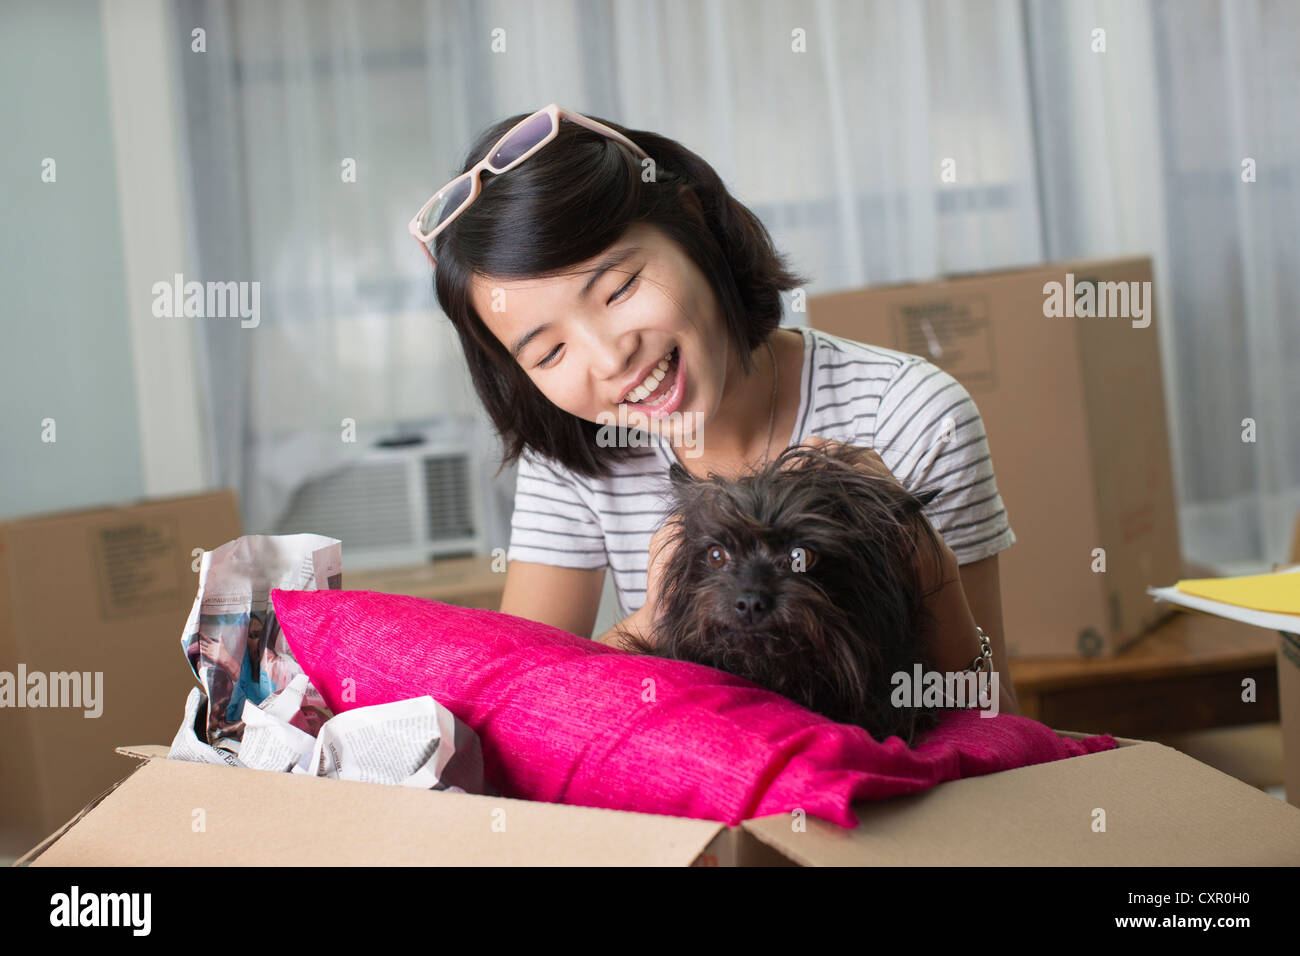 Young woman with pet dog in moving box - Stock Image